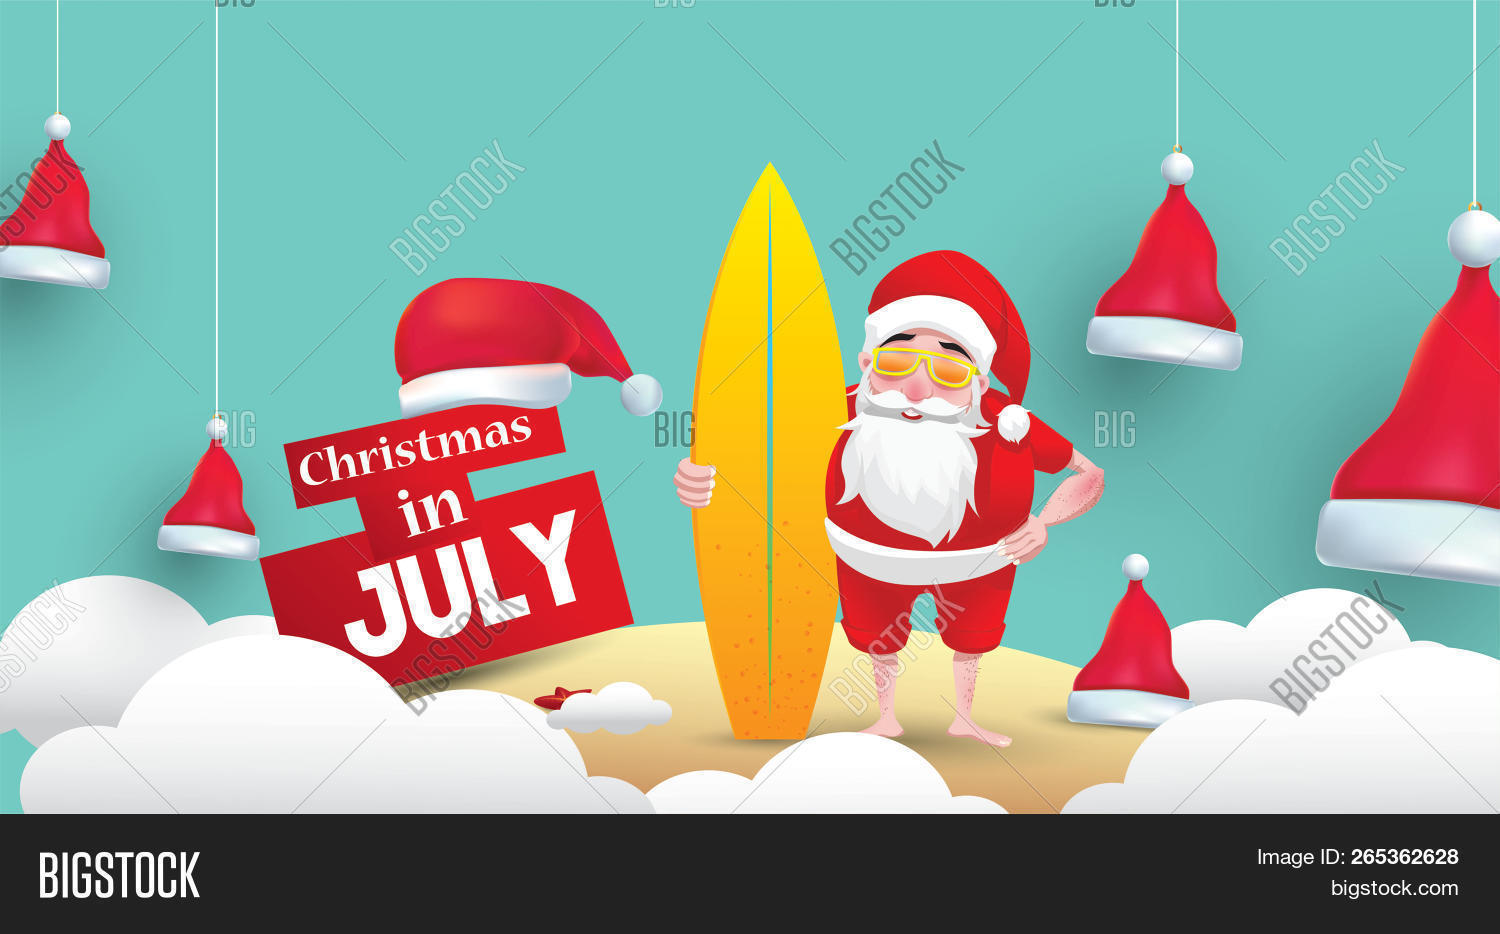 Christmas In July Free Image.Christmas July Design Image Photo Free Trial Bigstock